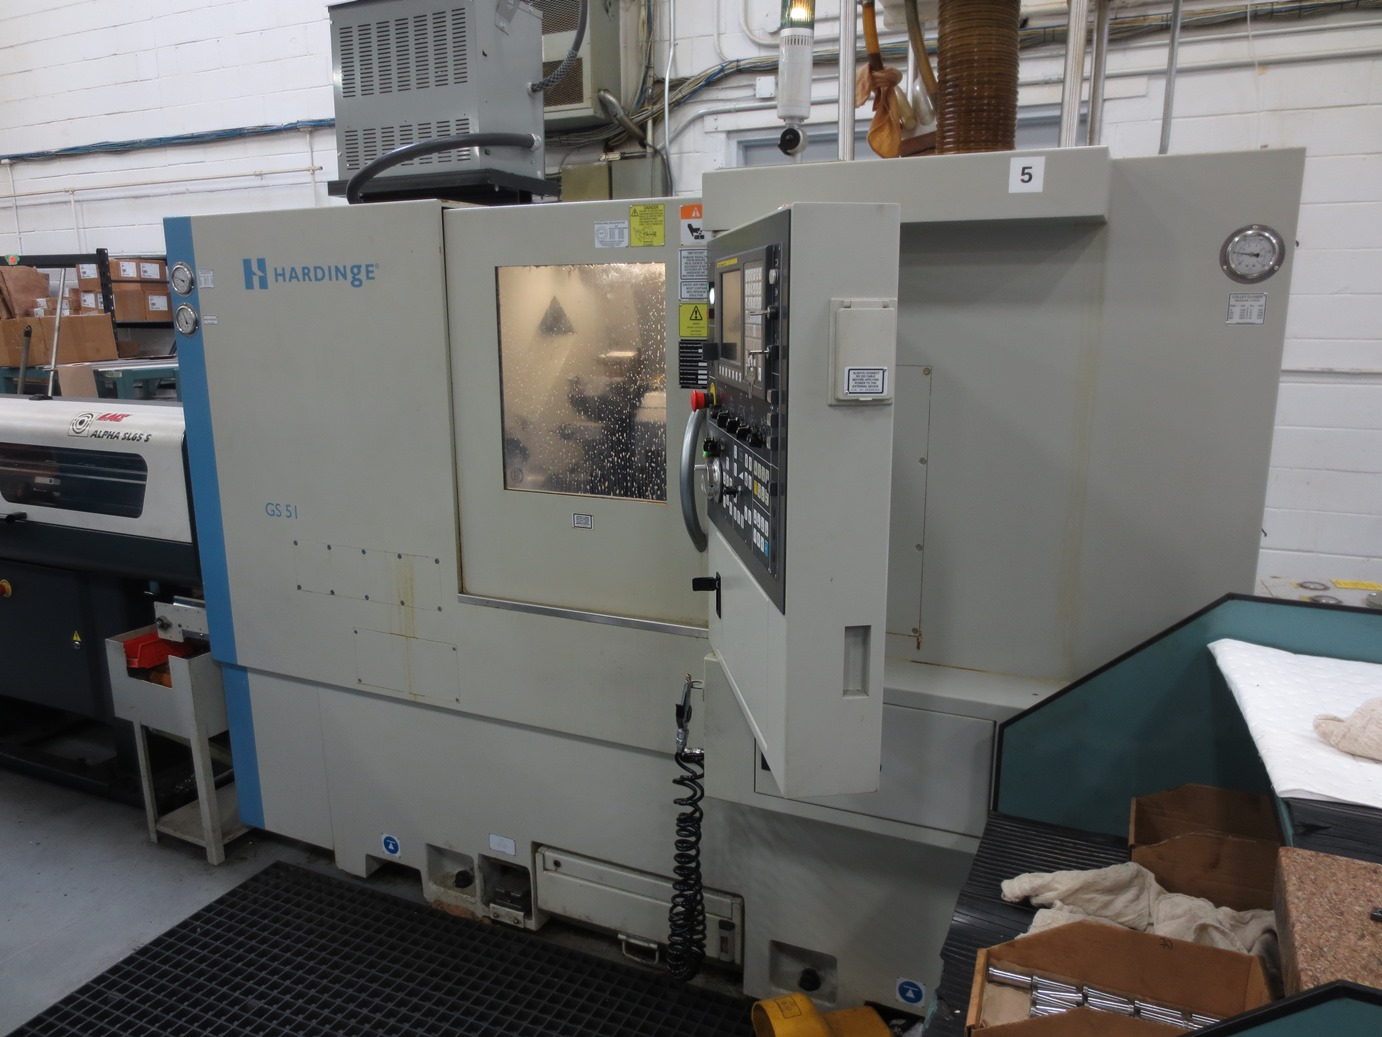 "Hardinge GS-51MS CNC Lathe w/Milling & Subspindle, Fanuc 0i-TD Control, 18"" Swing, 5.74""/15.98"" Travels, 5000 RPM, 2"" Bar Capacity, 12 Position Turret, BF Interface, Parts Catcher, C-Axis, Custom Macros, Low Hrs, 2013"